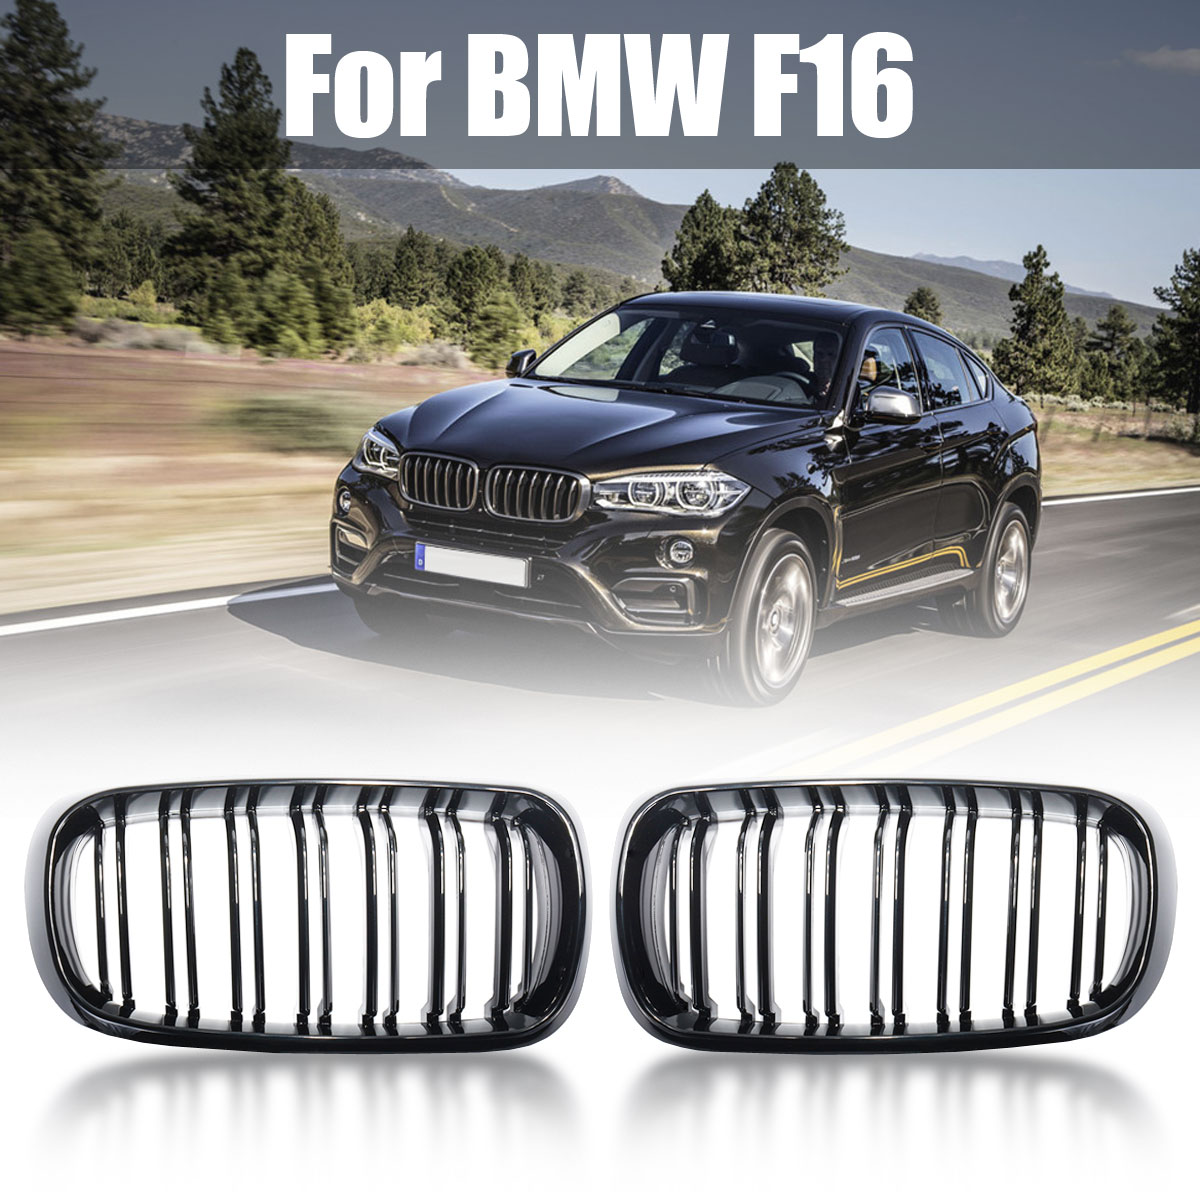 1 Pair New ABS Replacement Gloss/Matte Black 2 Double Slat Line Front Kidney Sport Grill Grille For BMW F15 F16 X5 X6 2014-2018 pair gloss matt black m color front kidney racing bumper grille grill for bmw x5 f15 x6 f16 x5m f85 x6m f86 2014 2015 2016 2017